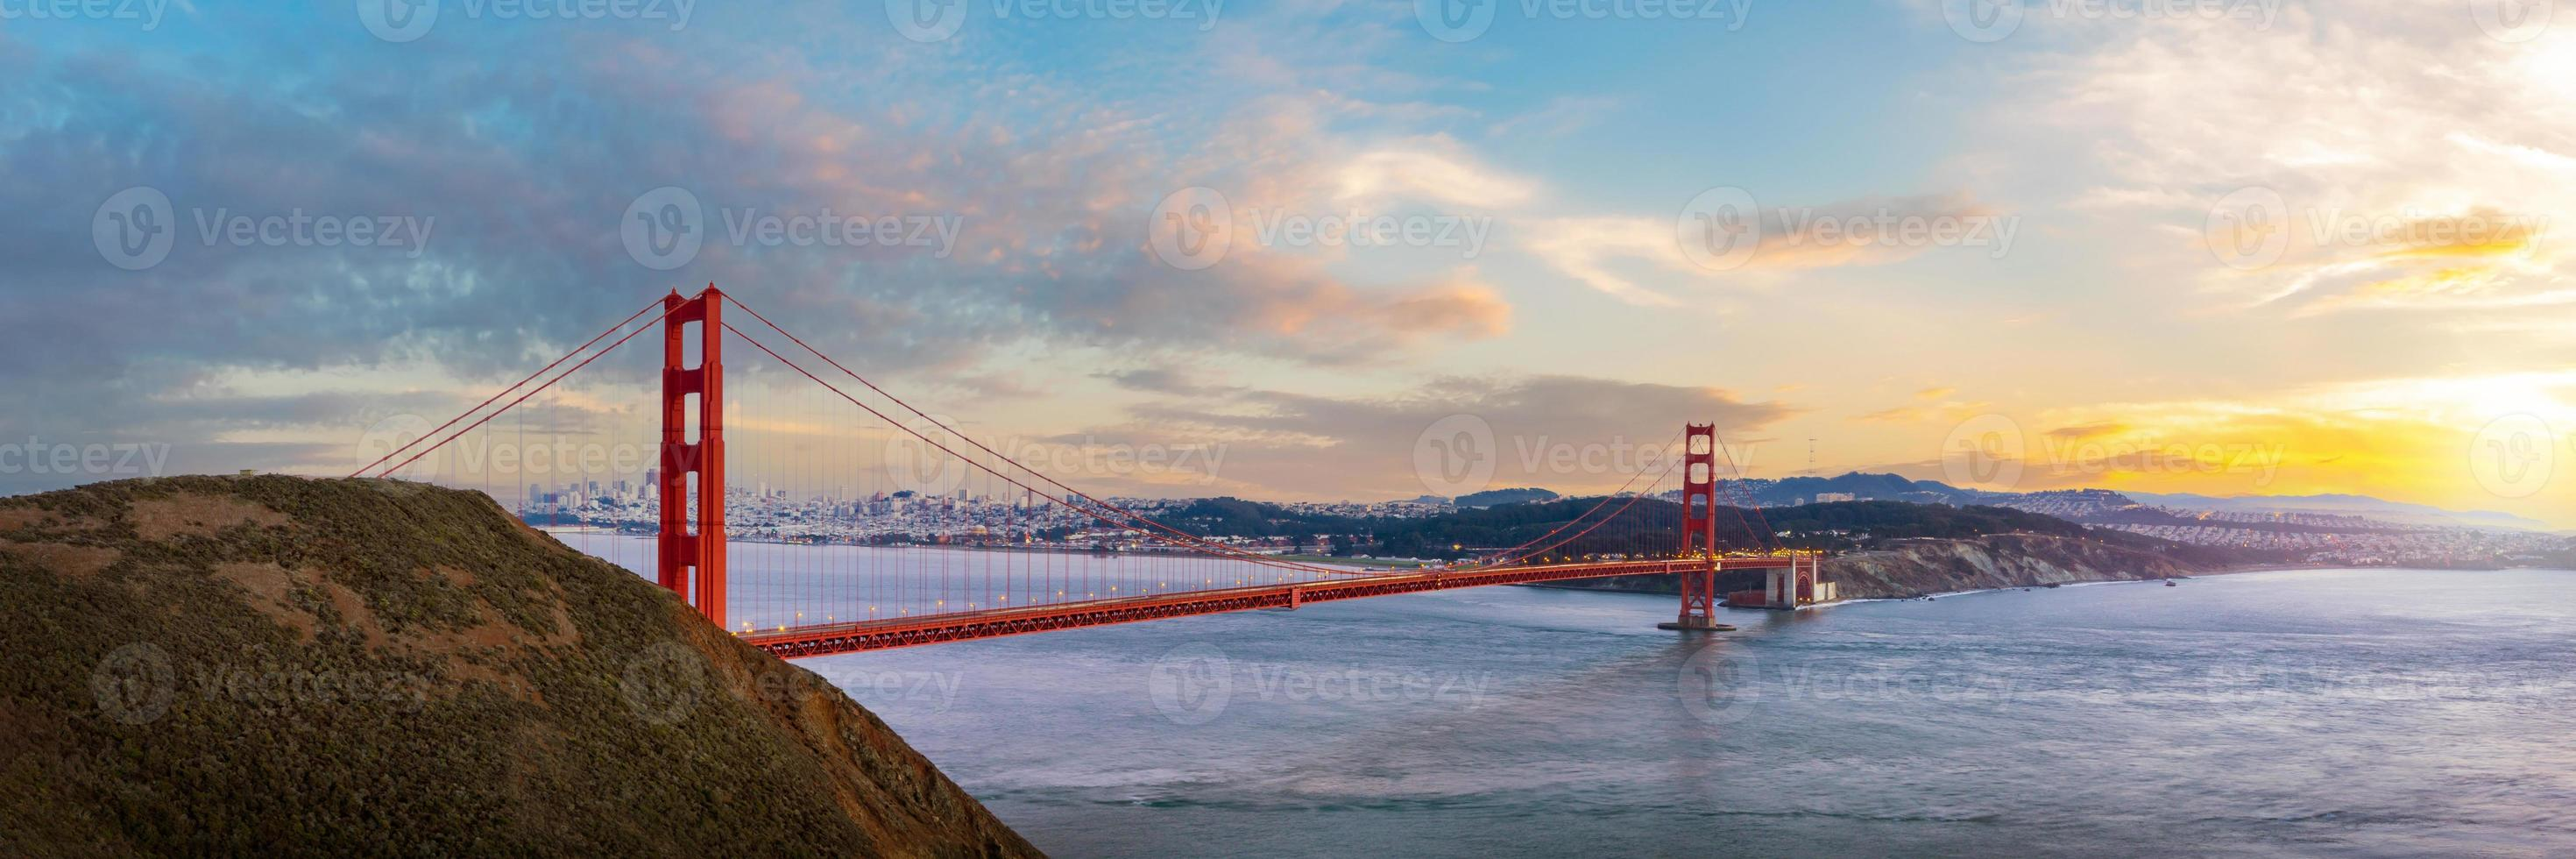 Panorama view of Golden Gate bridge on sunset time photo